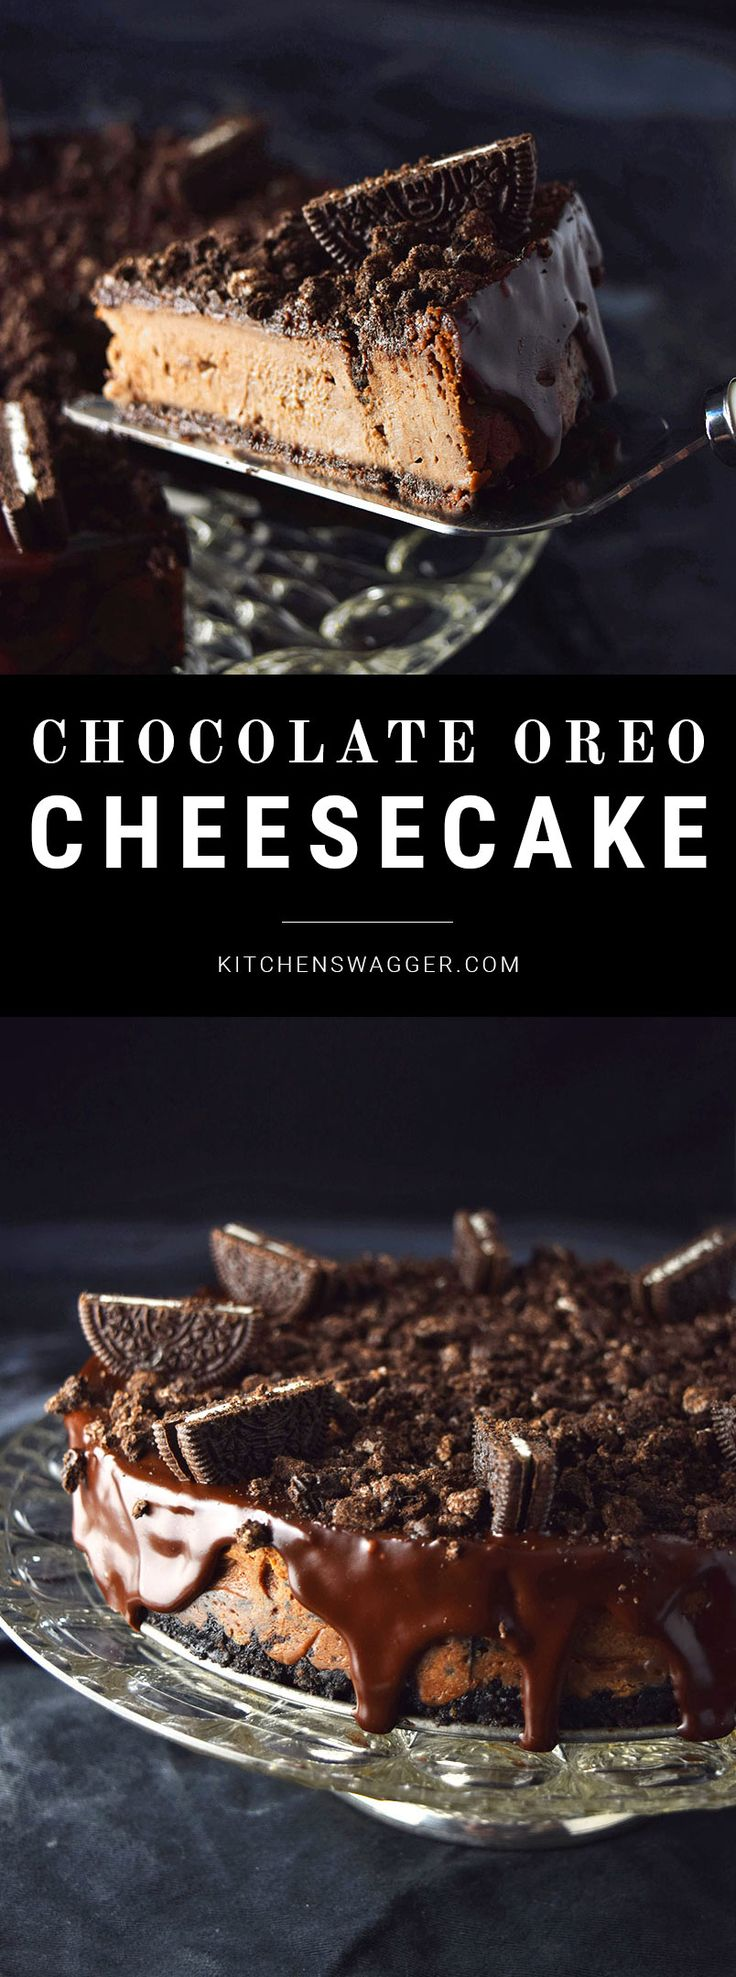 Easy and rich chocolate Oreo cheesecake recipe.